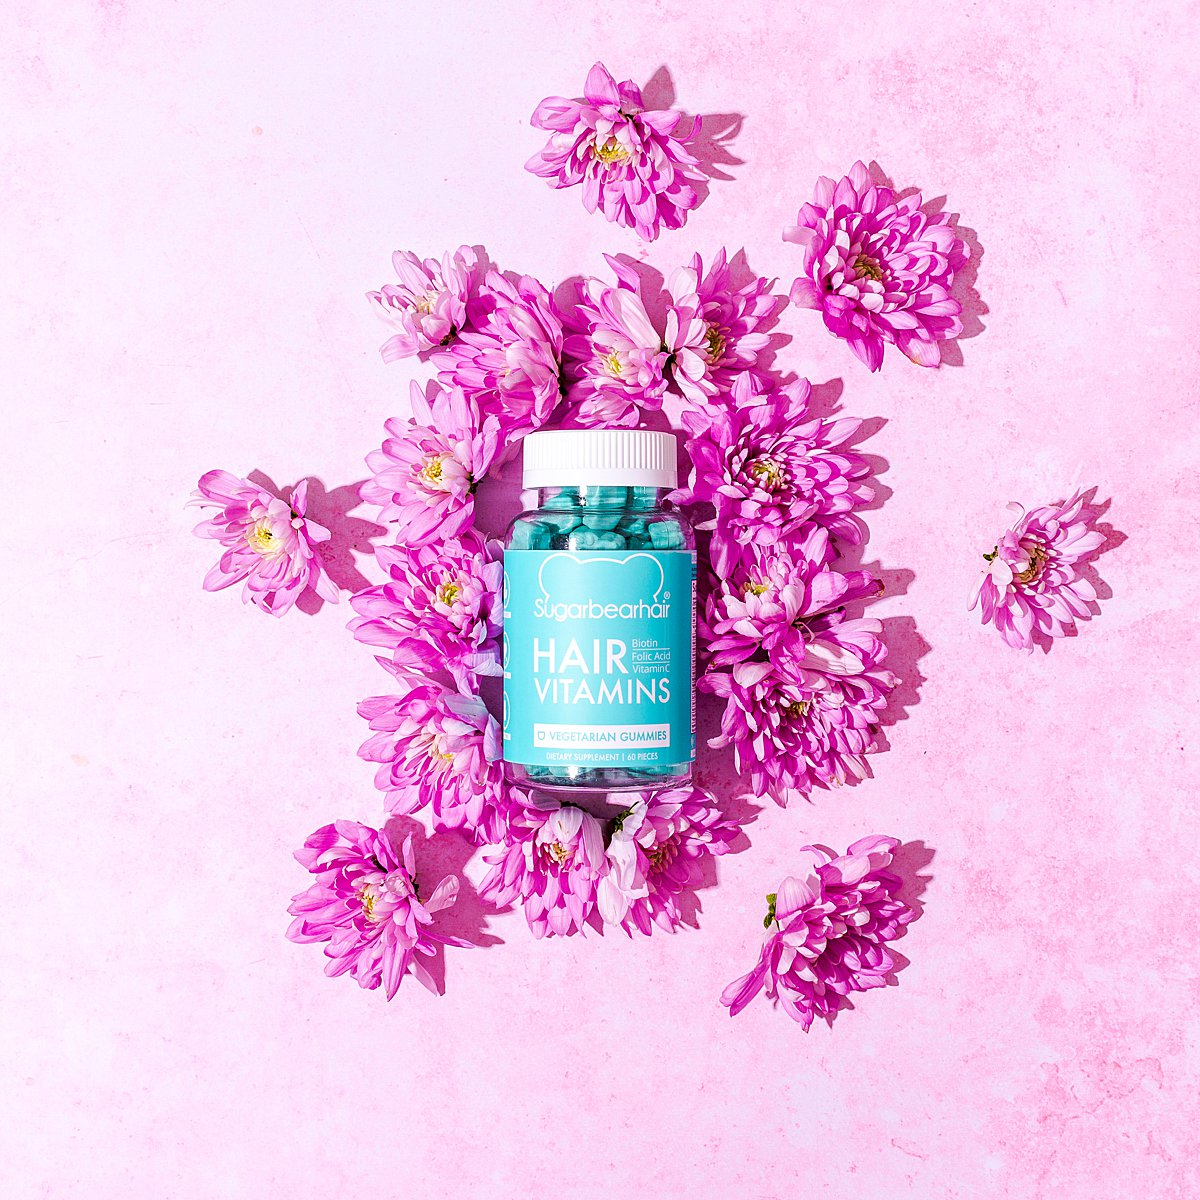 Cute colourful content creation for SugarBearHair vitamin supplements. Styled product stills photography by Marianne Taylor.